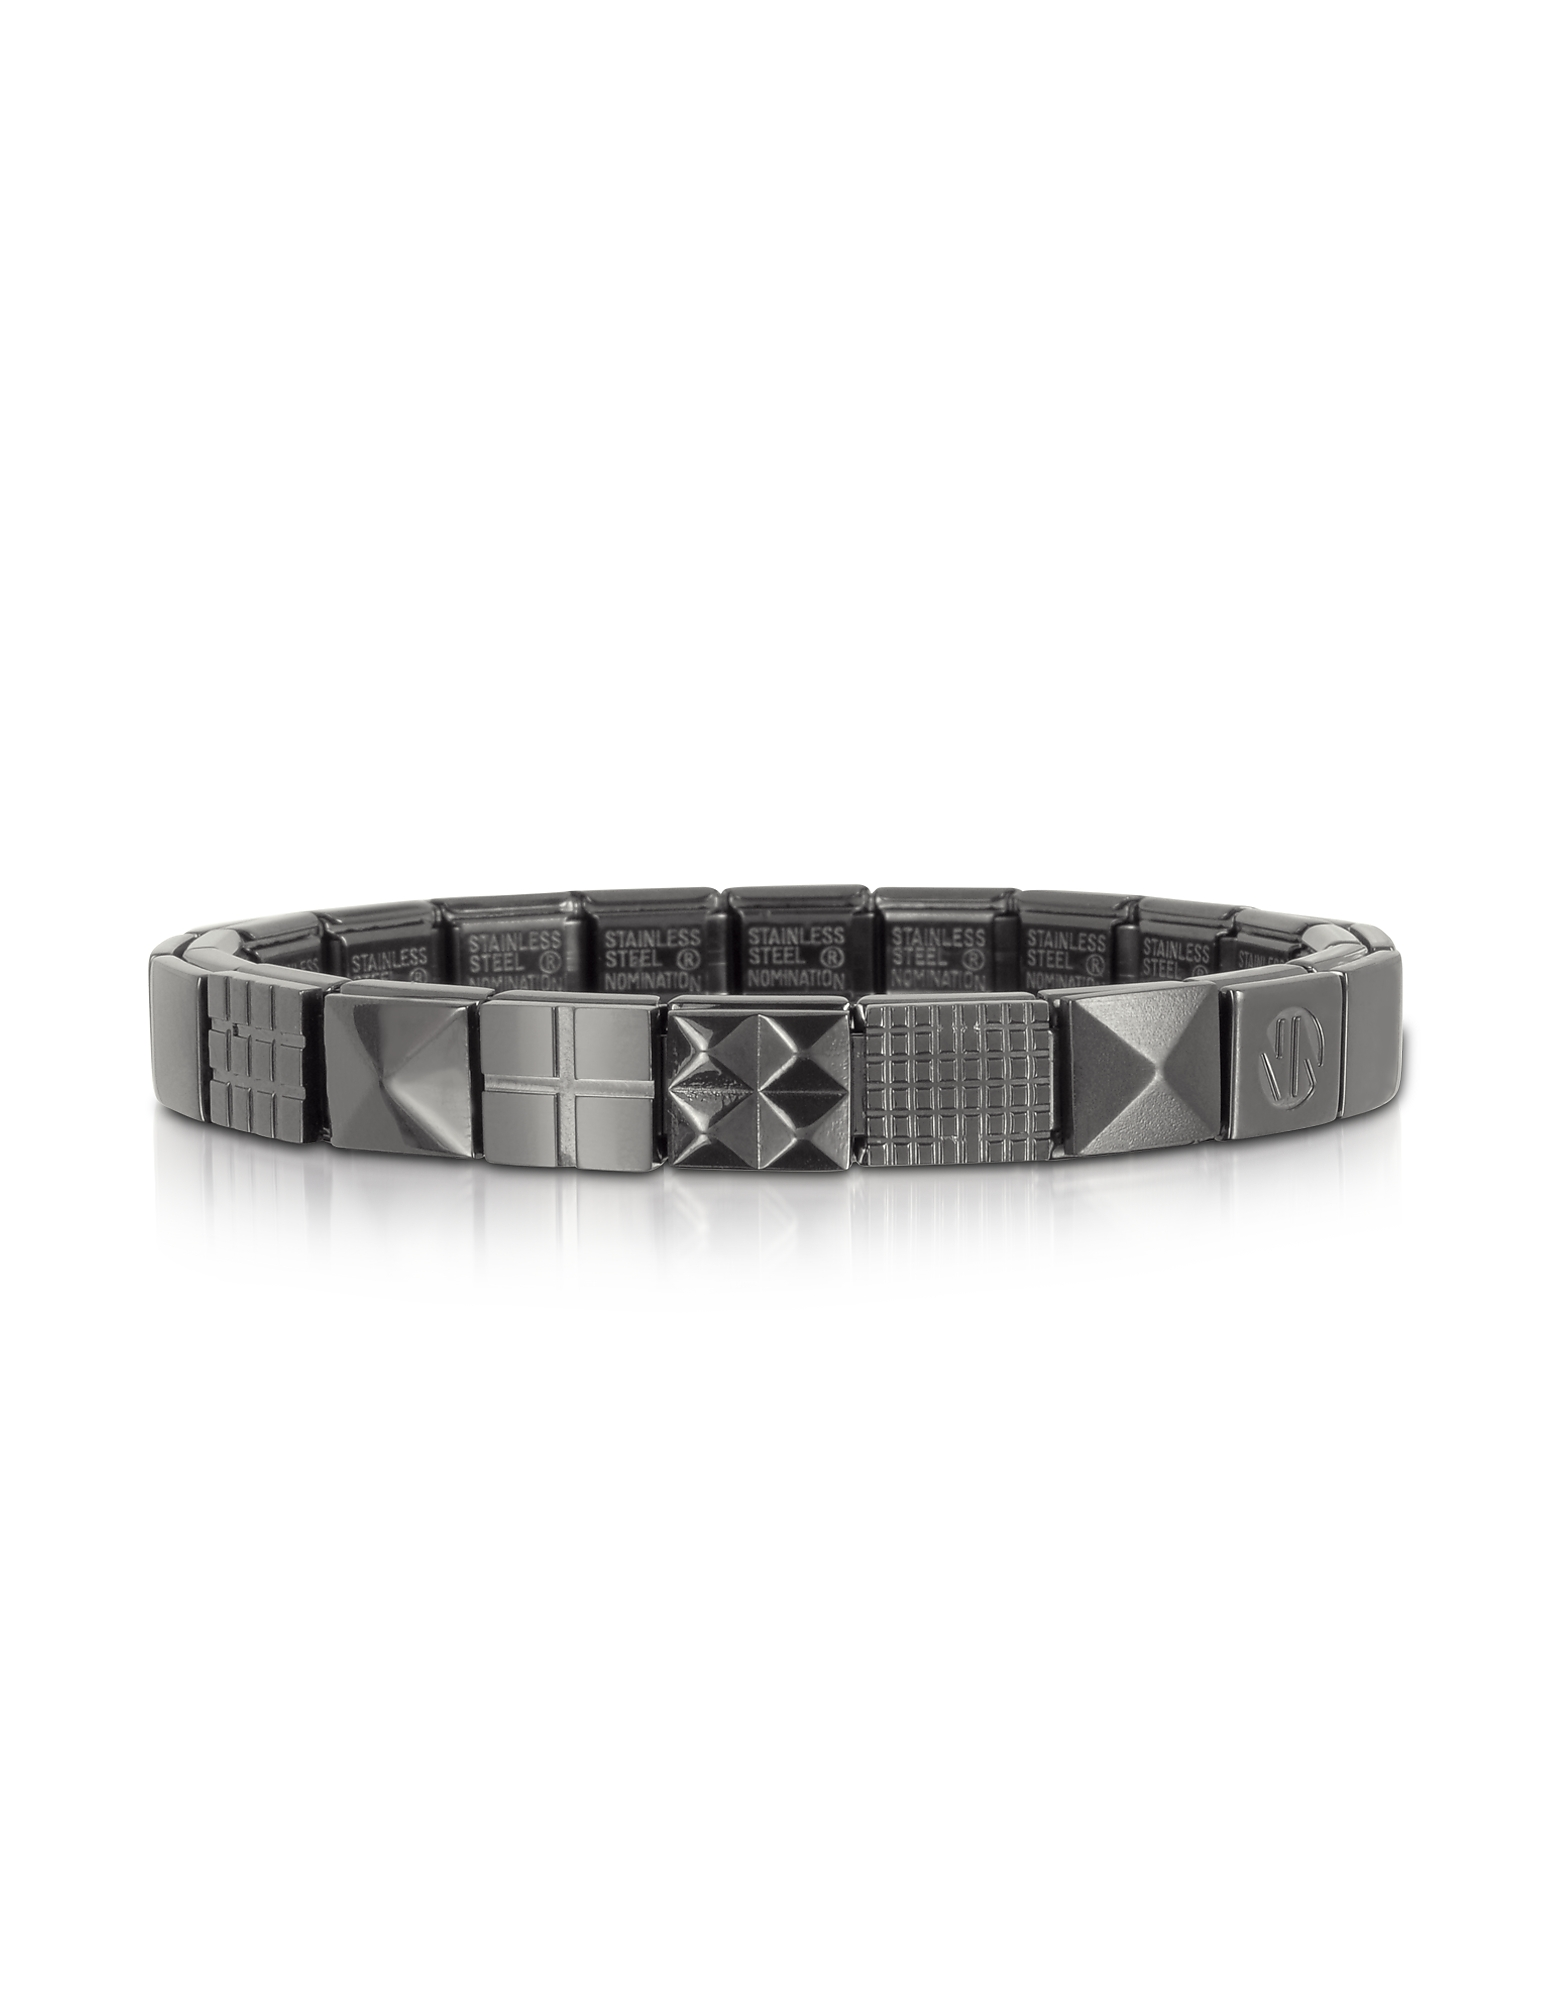 Nomination Men's Bracelets, Steel Ikons Pyramid and Mesh Brushed Stainless Steel Bracelet